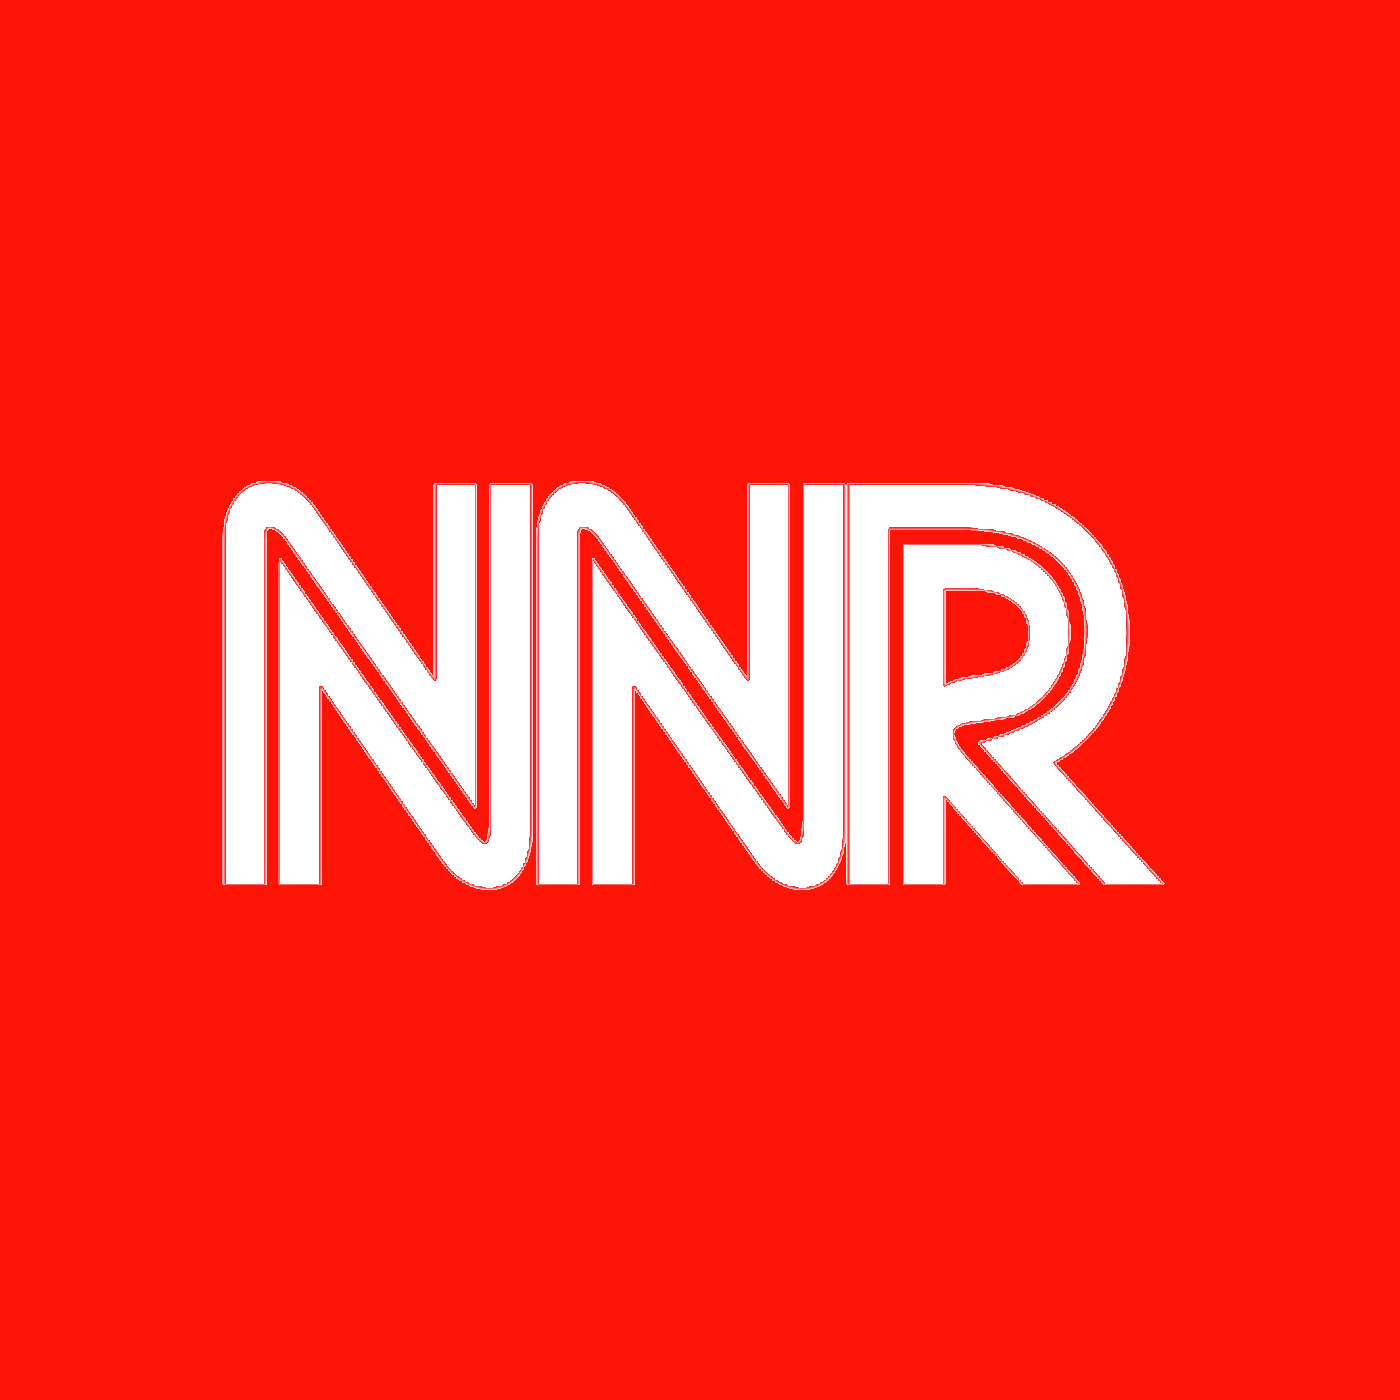 NNR20 Episode 1: July 29, 2019